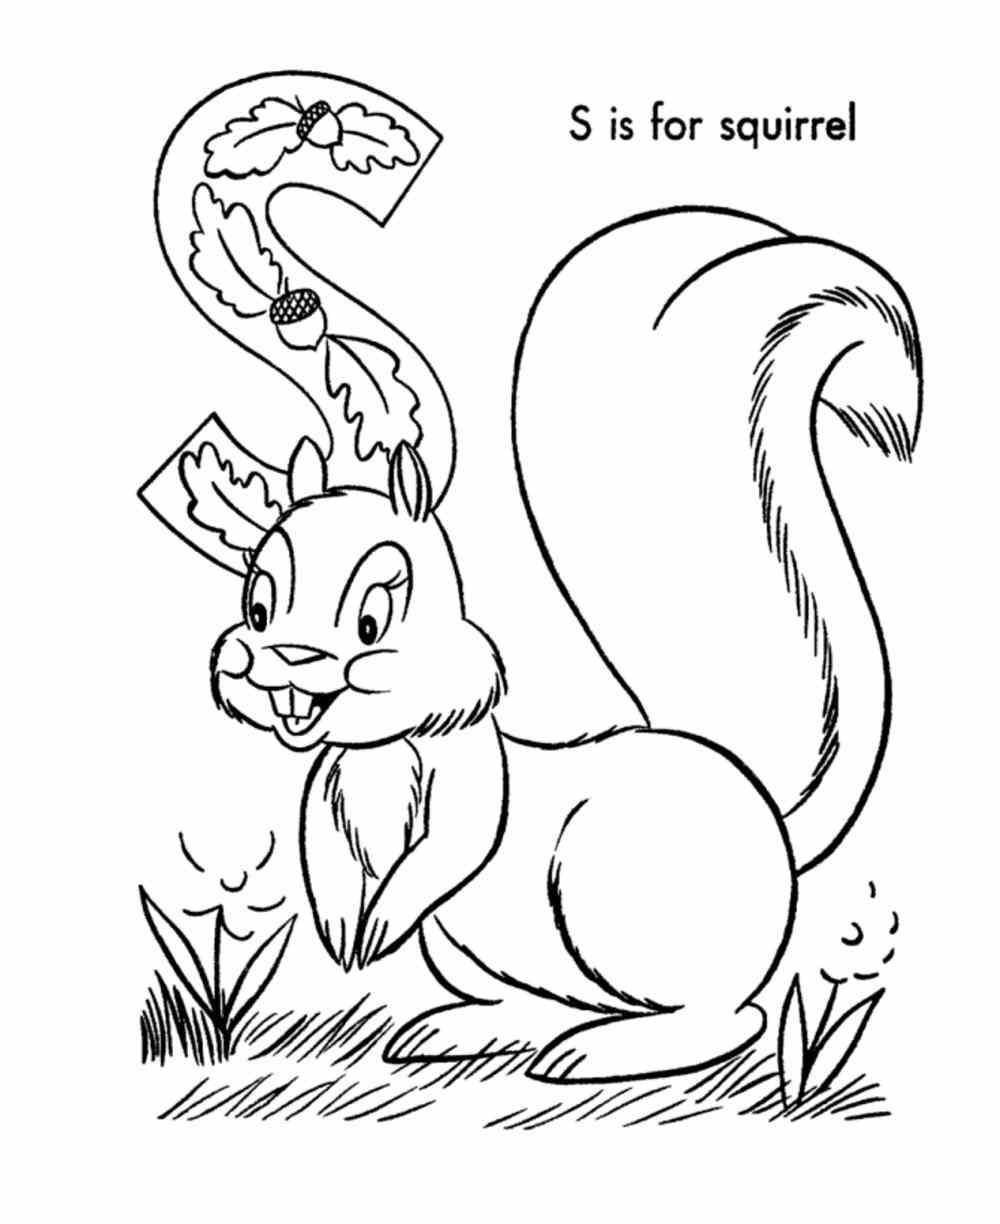 squirrel coloring page squirrel coloring page home flying free printable pages flying squirrel coloring page squirrel - Squirrel Coloring Pages Printable